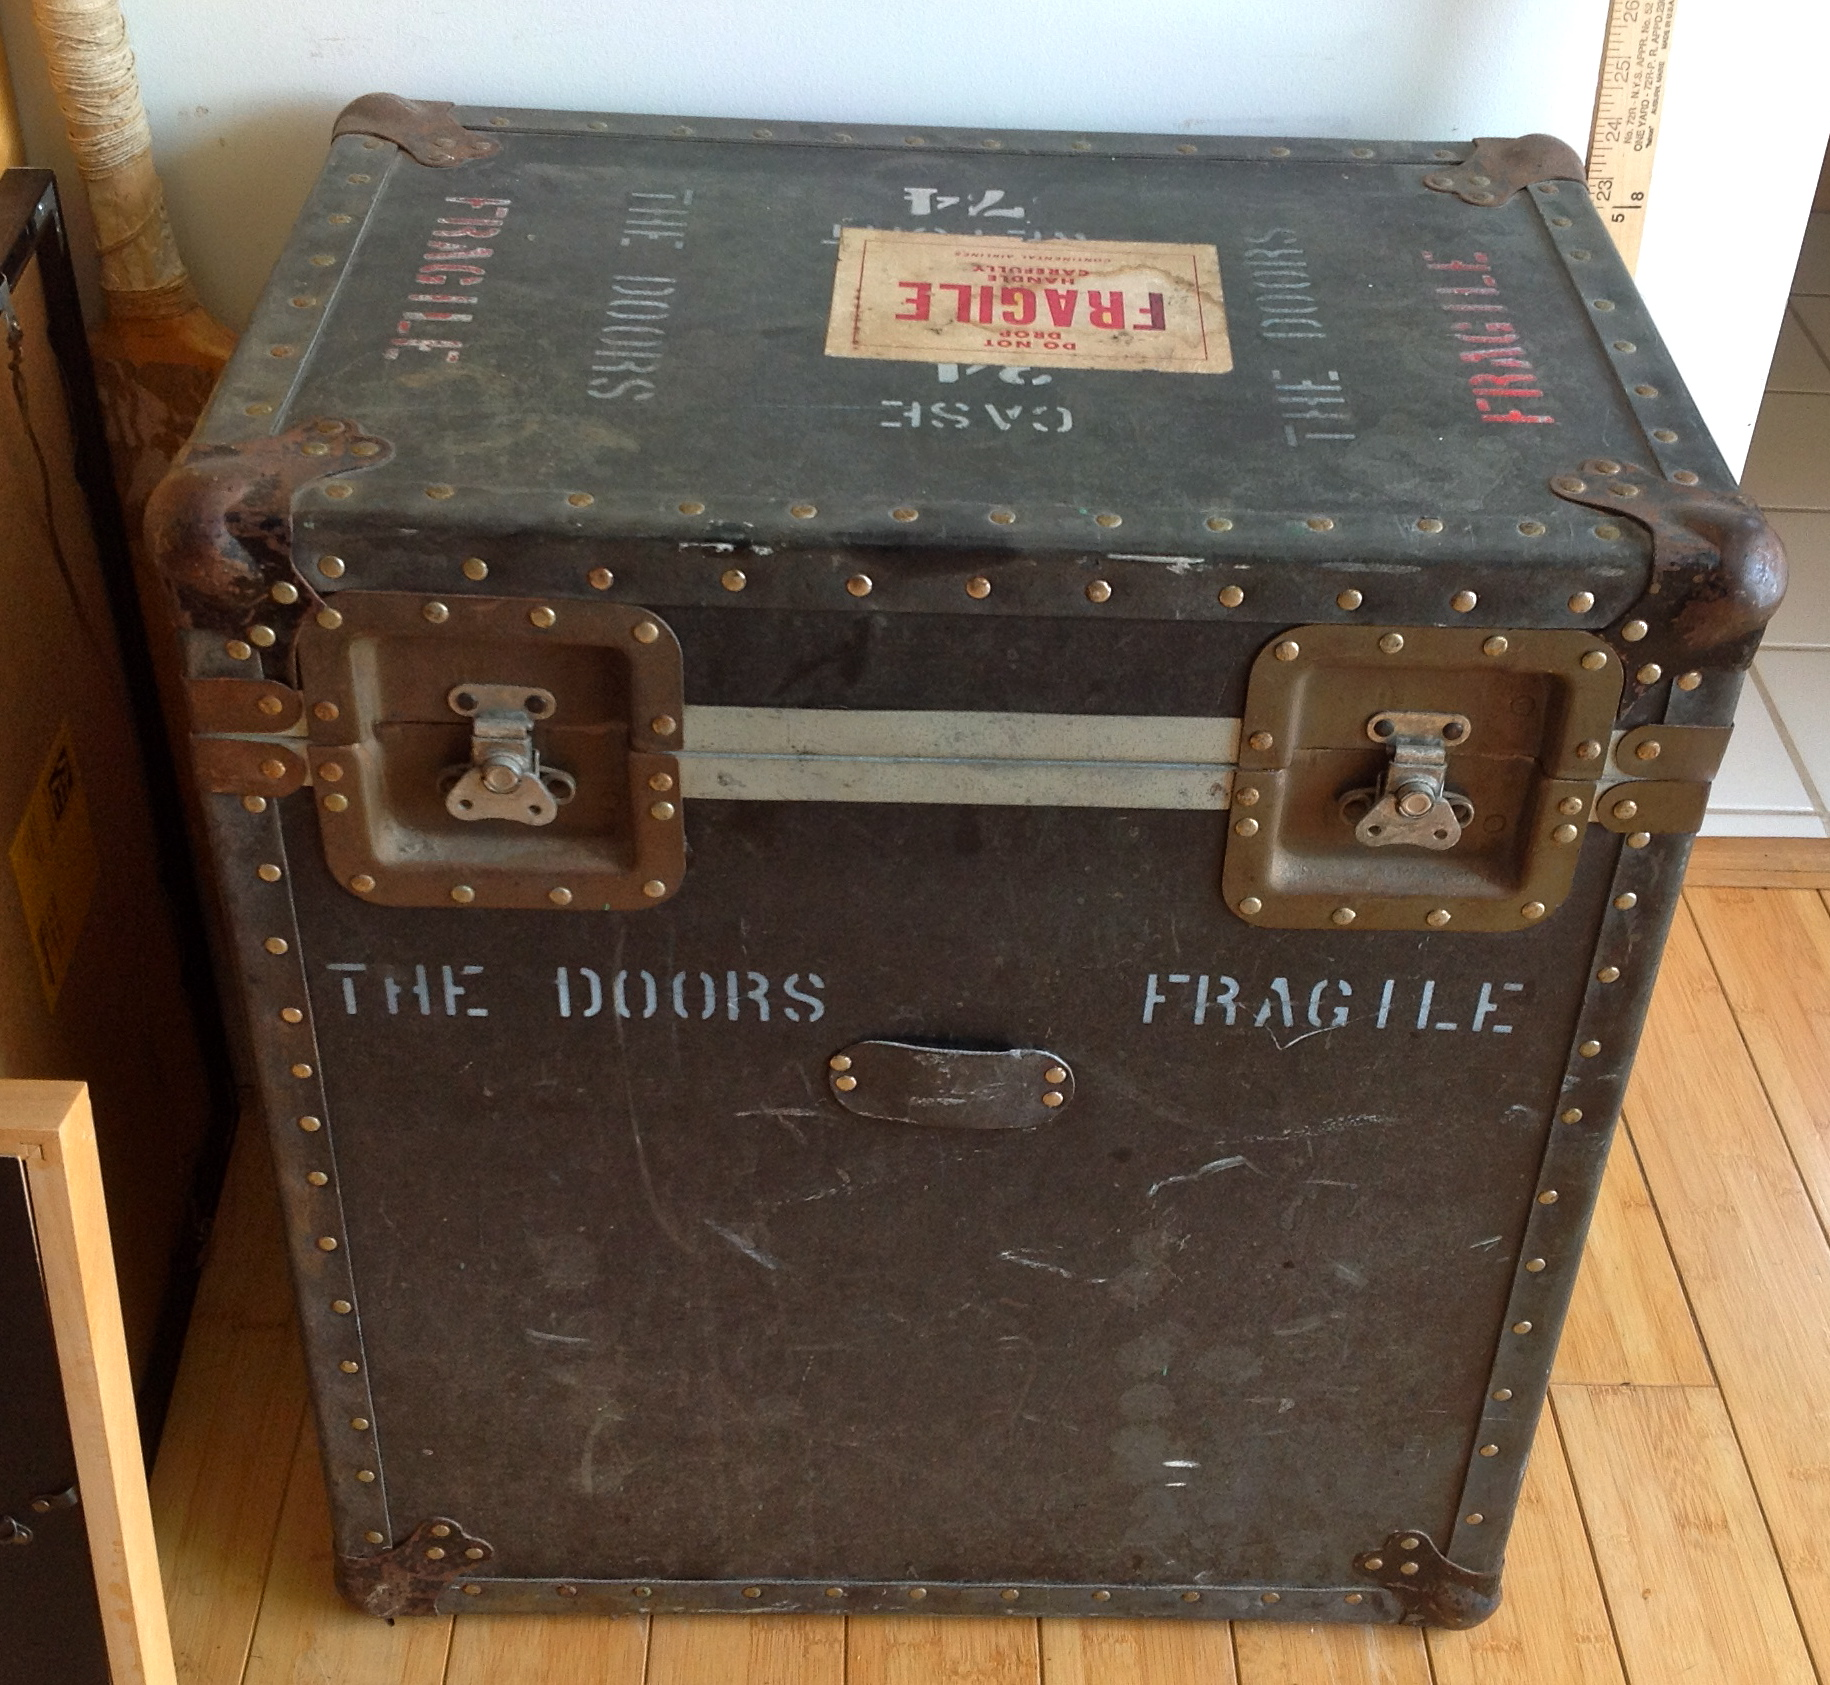 On The Road Again Set Lists And Road Cases The Doors